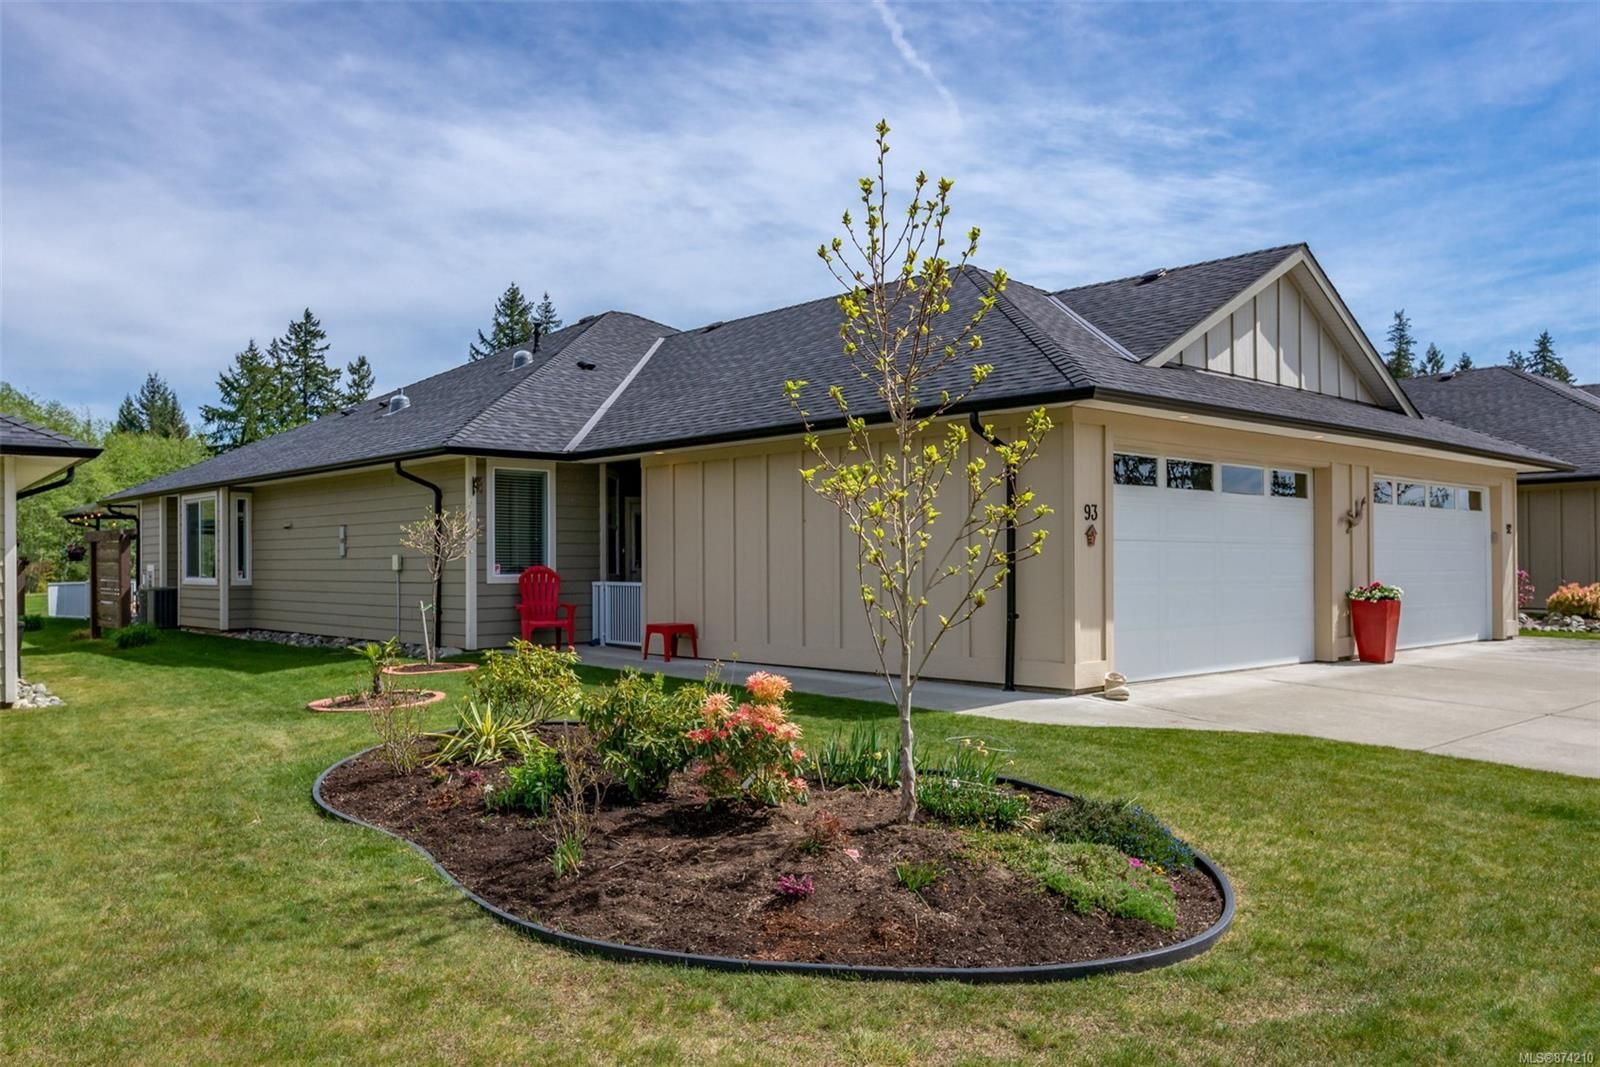 Main Photo: 93 2006 Sierra Dr in : CR Campbell River West Half Duplex for sale (Campbell River)  : MLS®# 874210